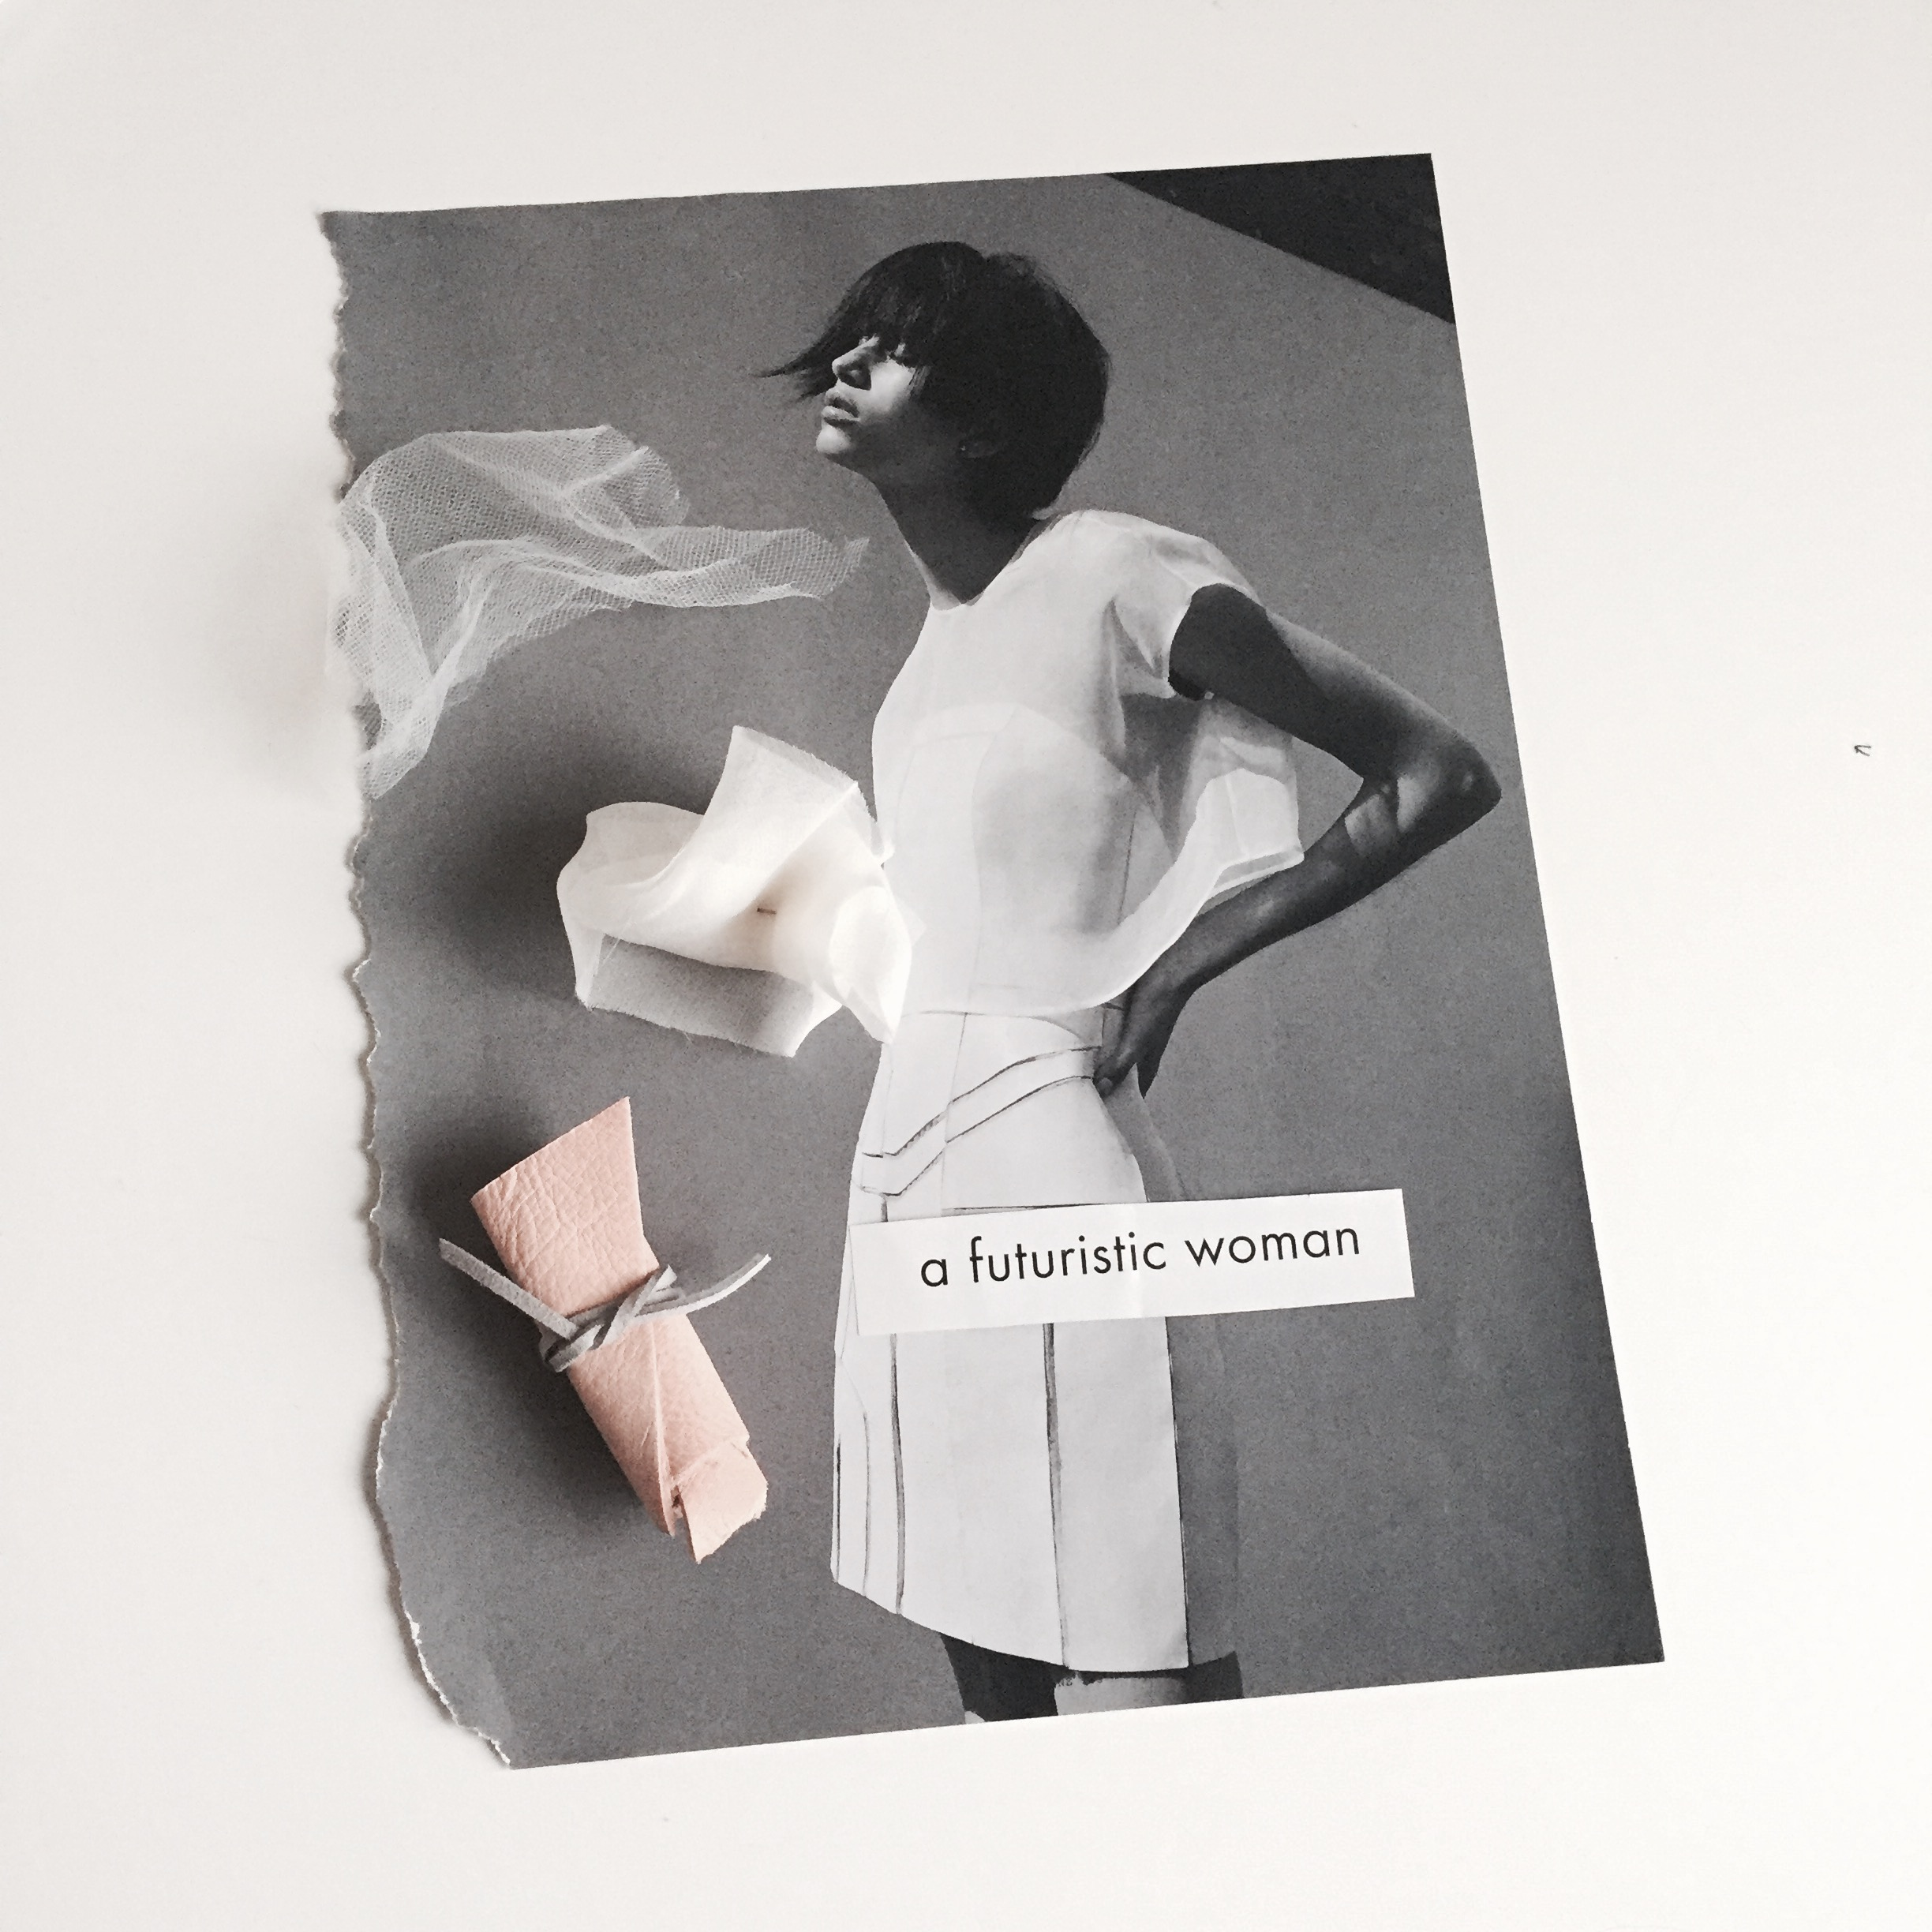 Fabric Mood Inspired by the I.D editorial 'a futuristic woman'